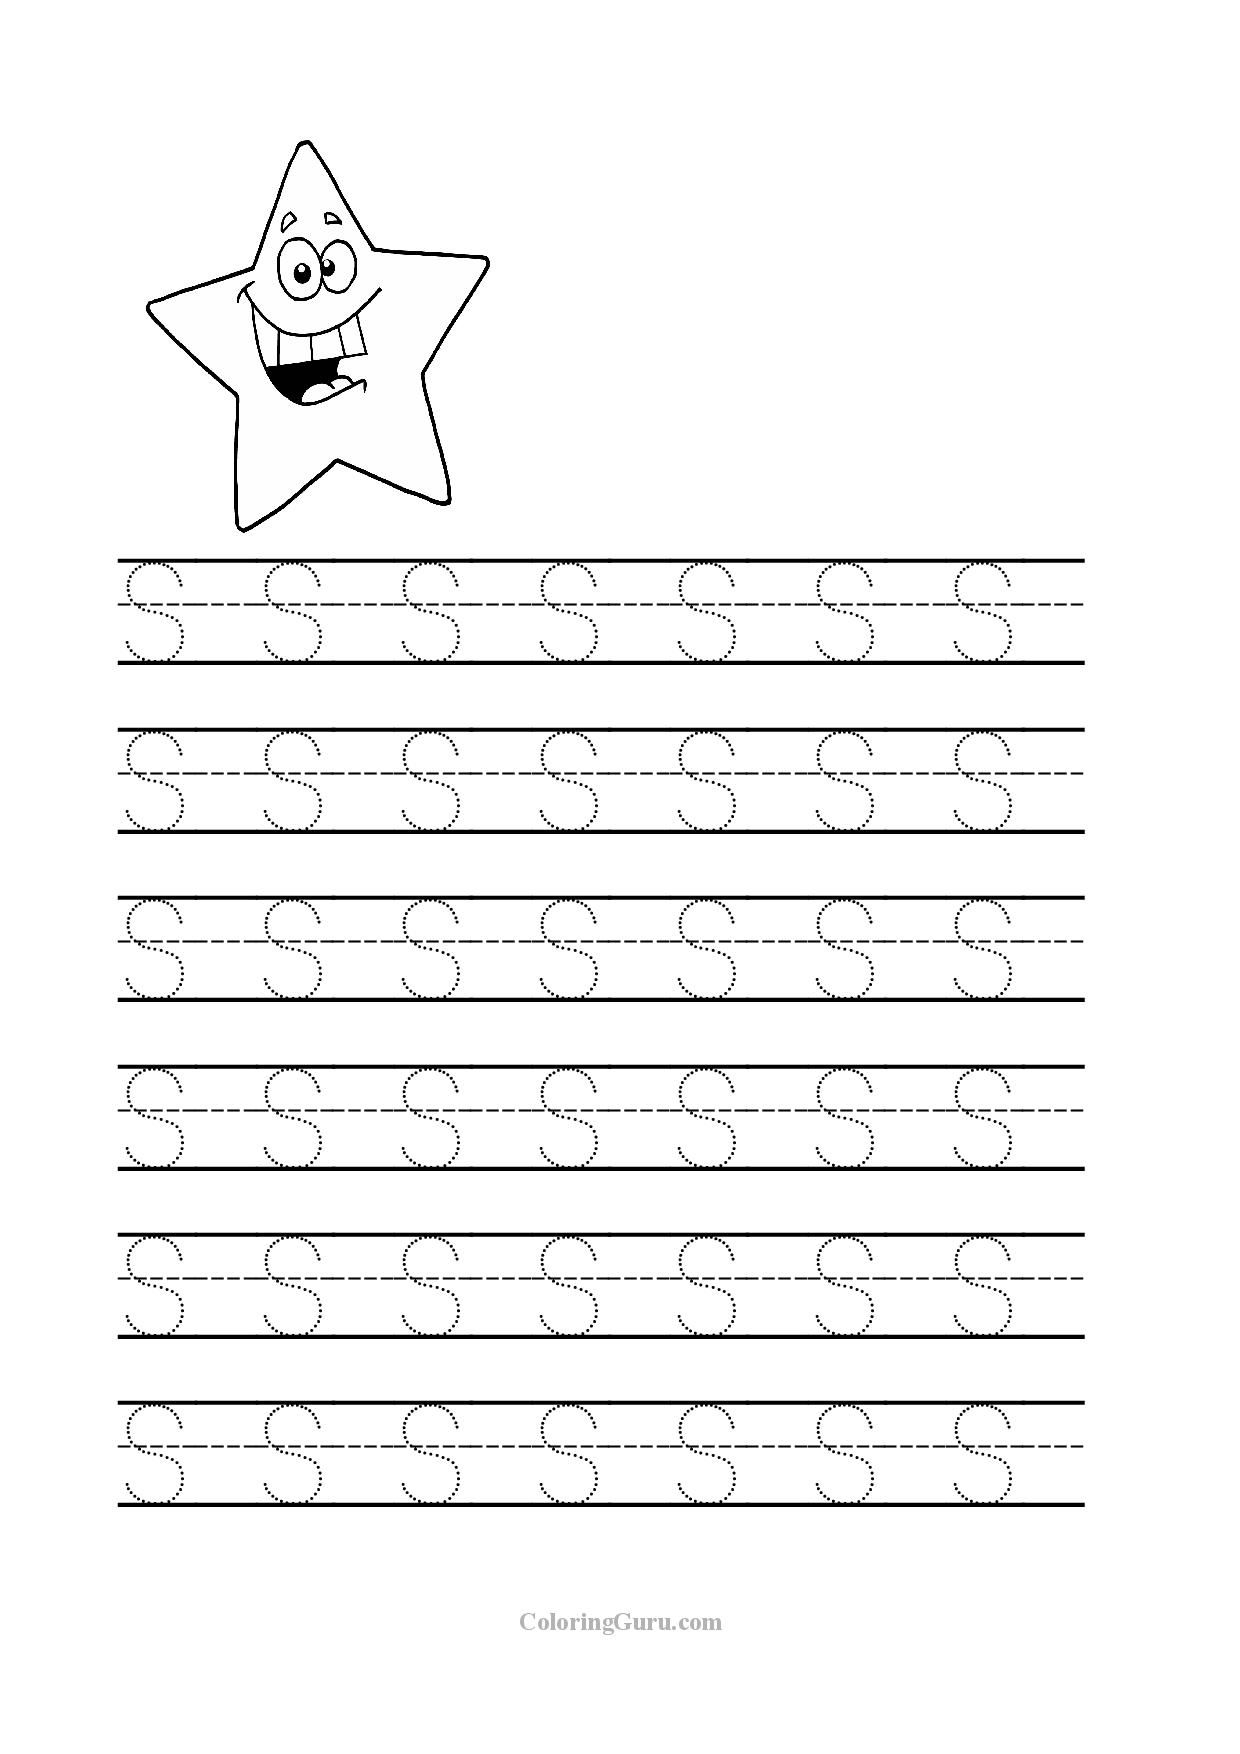 Free Printable Tracing Letter S Worksheets For Preschool within Free Printable Tracing Letters For Kindergarten